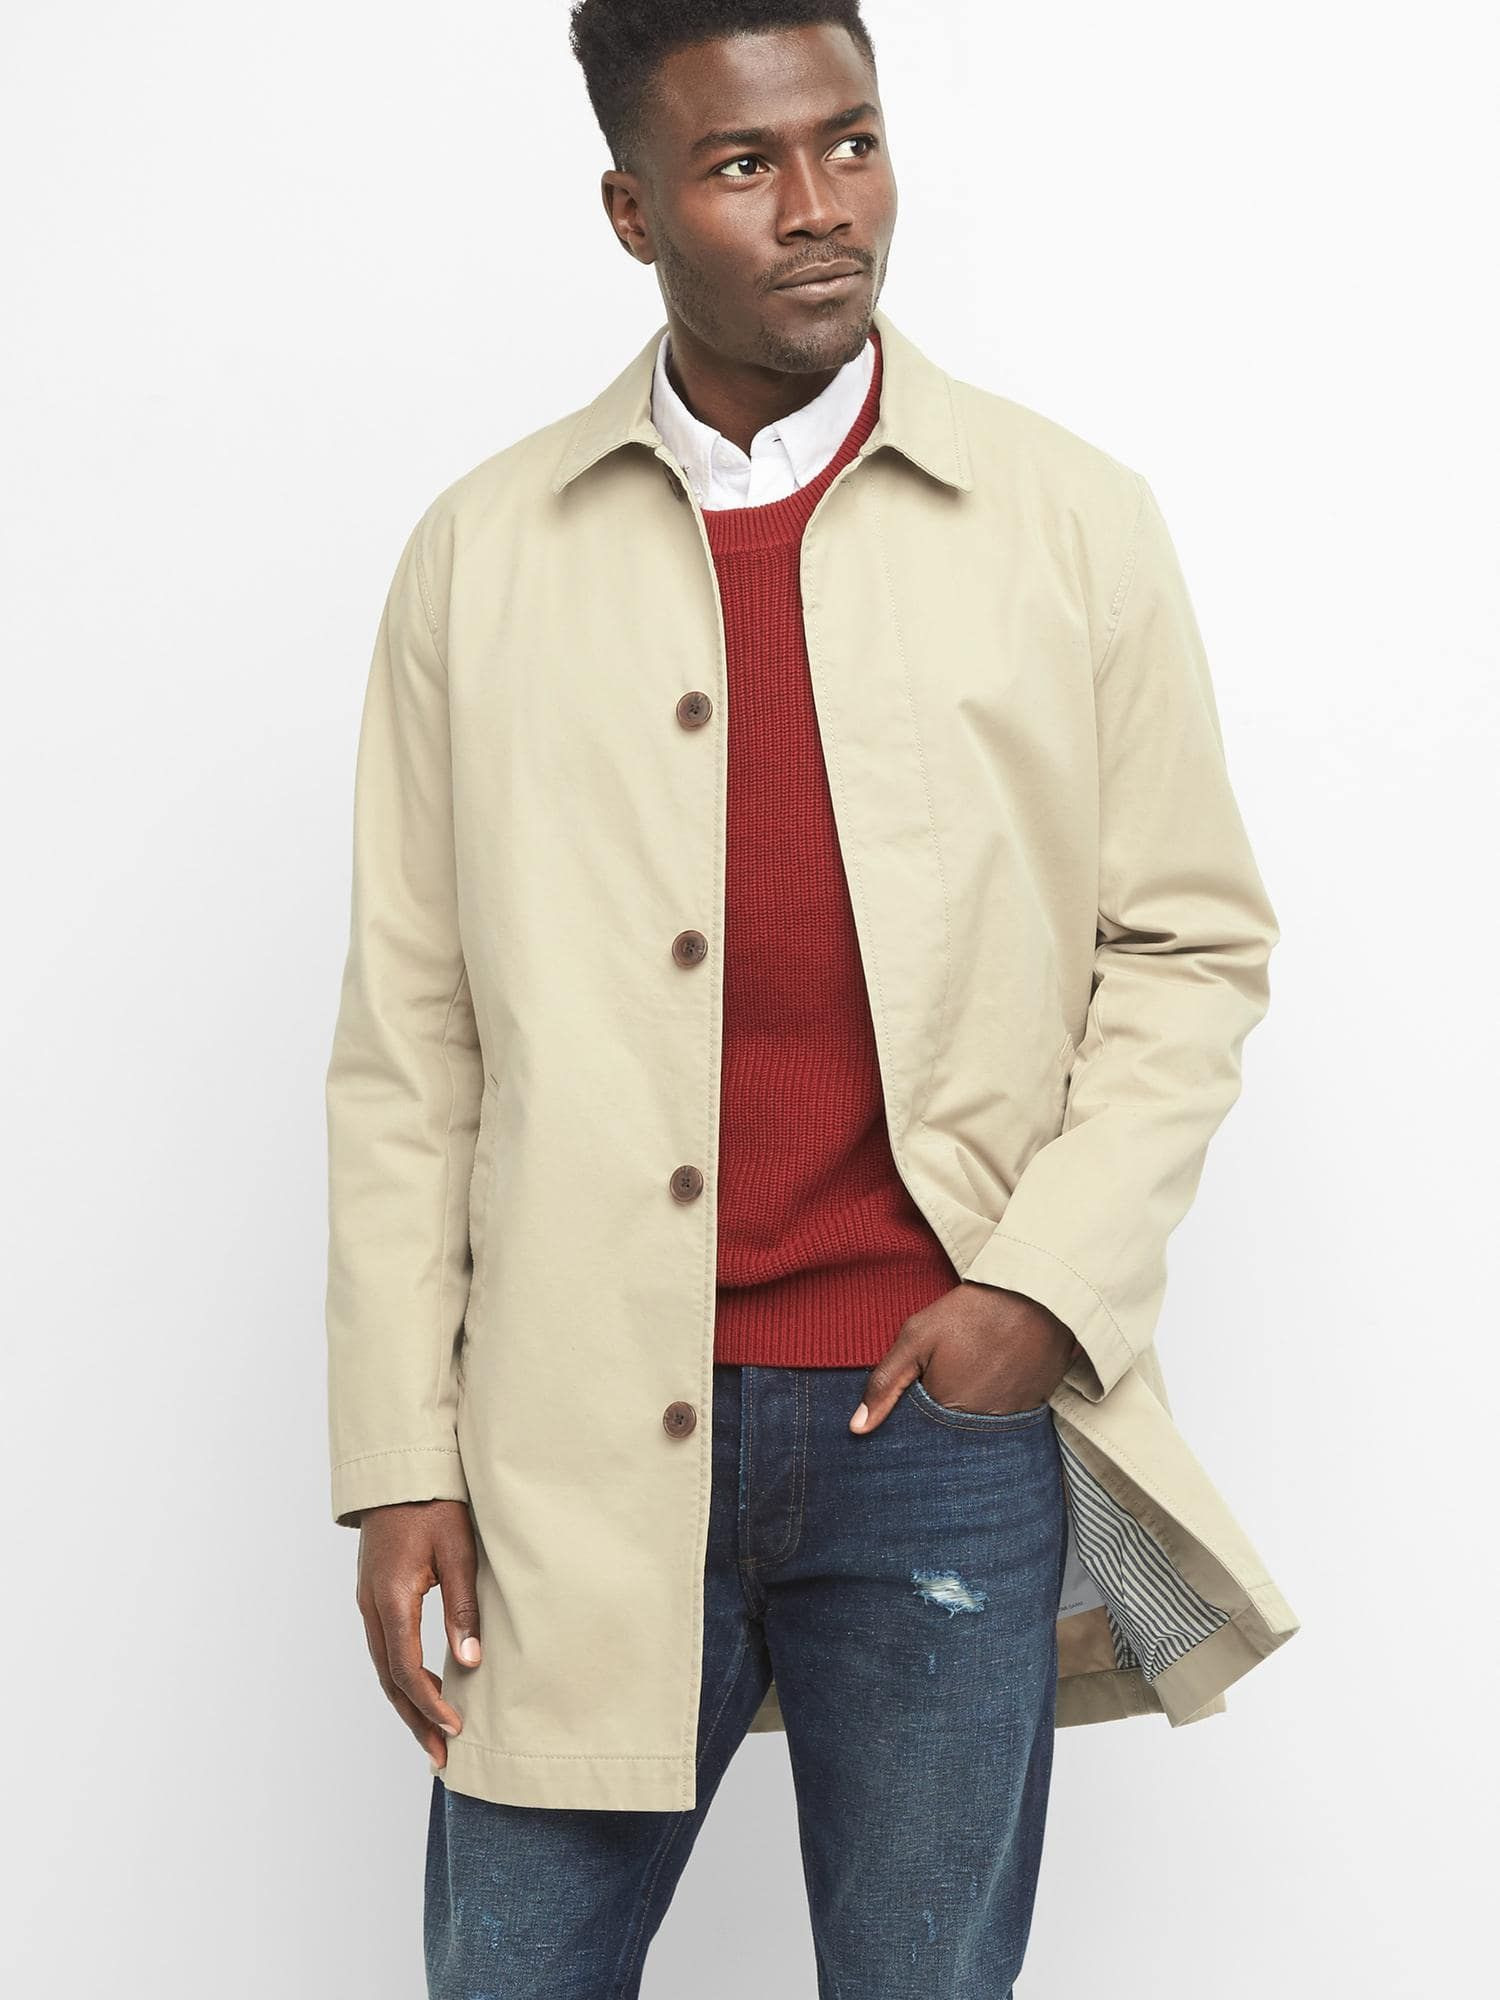 Gap Men S Twill Mac Jacket From Gap Com Sponsored